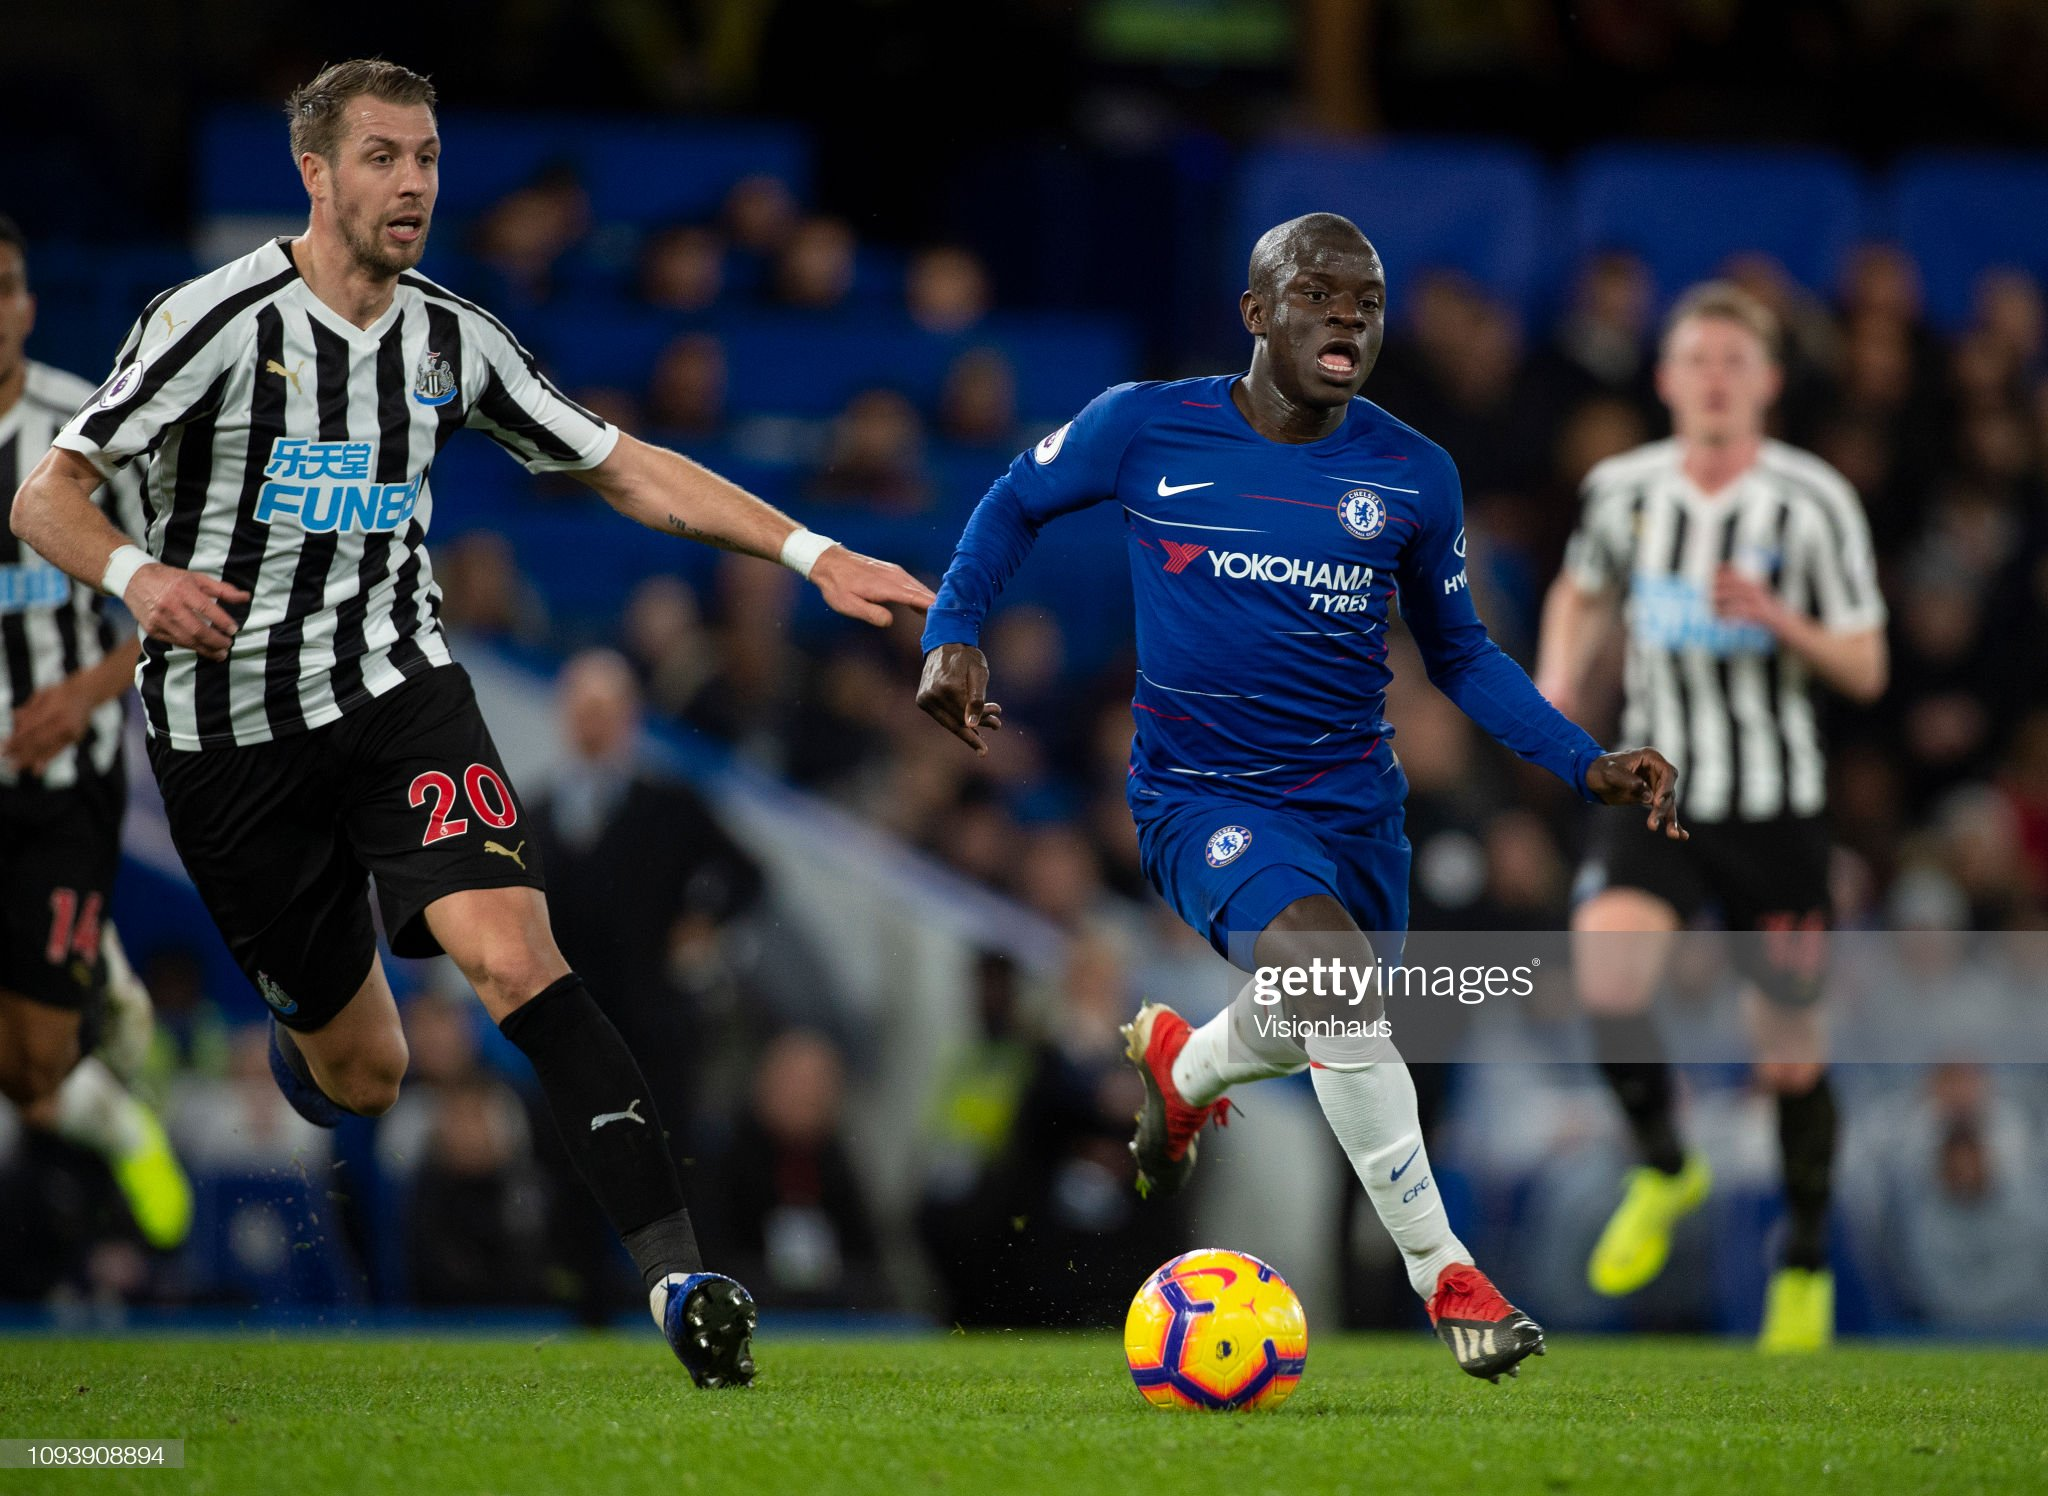 Chelsea v Newcastle preview, prediction and odds